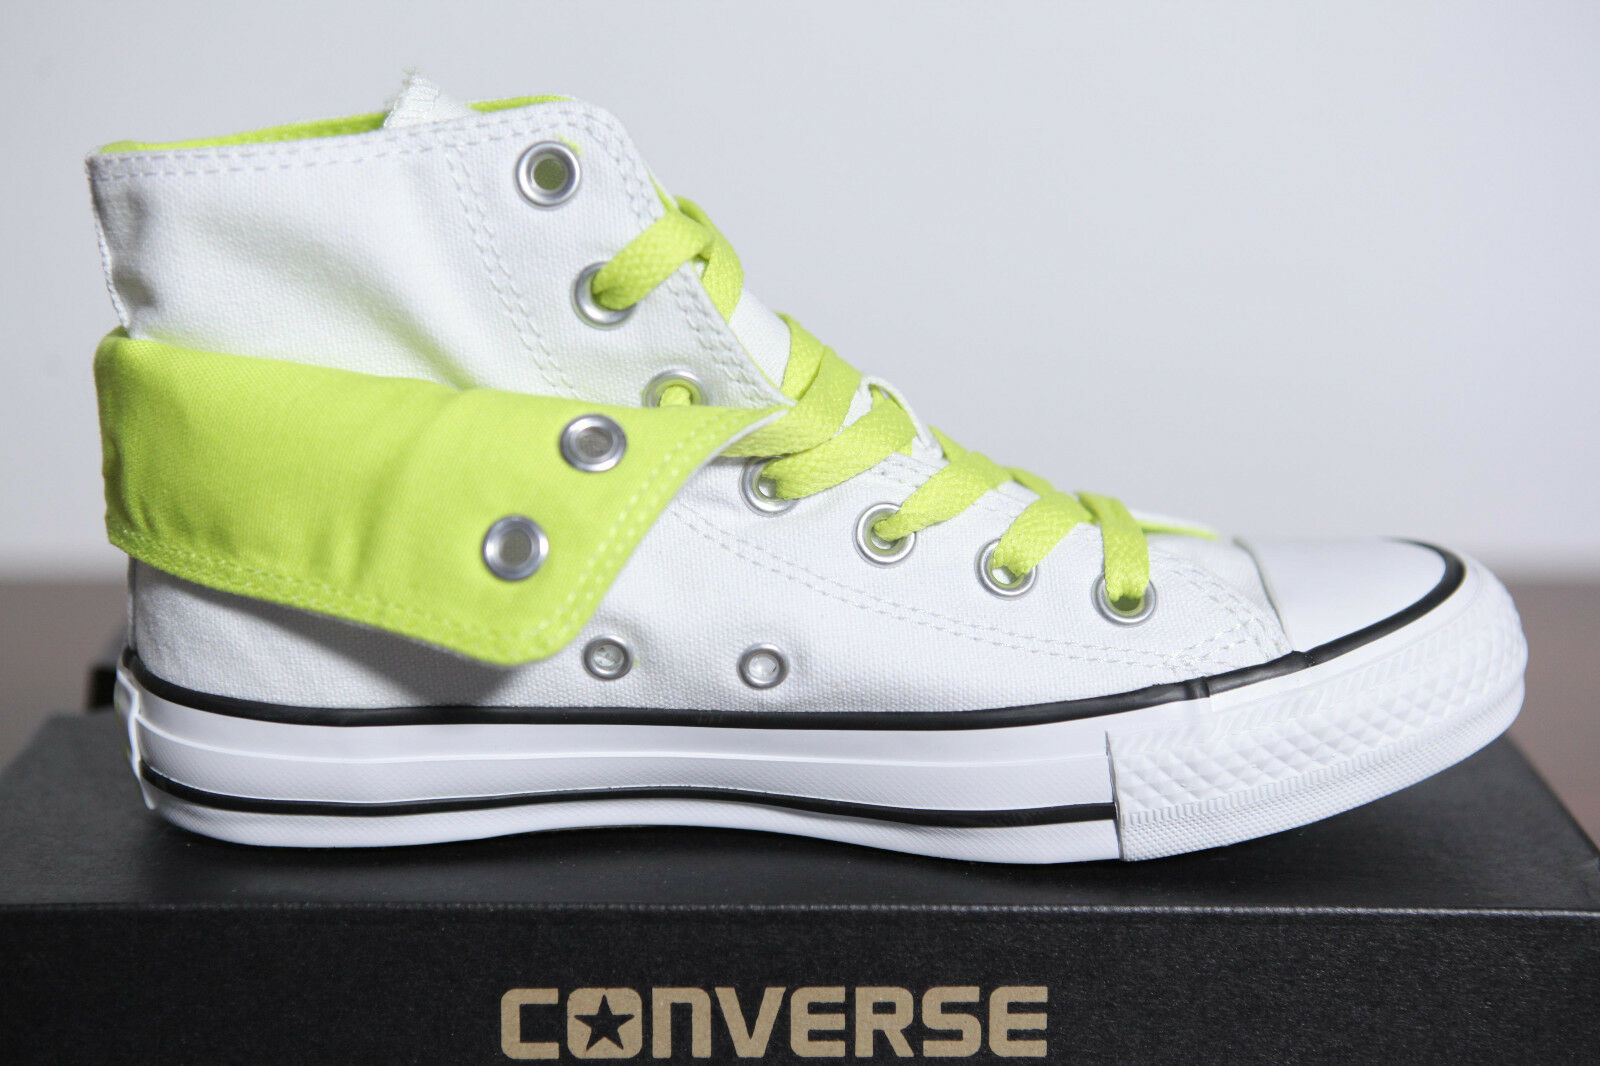 Neu All Star Converse Chucks Hi Two Fold Sneaker weiß 542590c Gr.39 UK 6 2-14